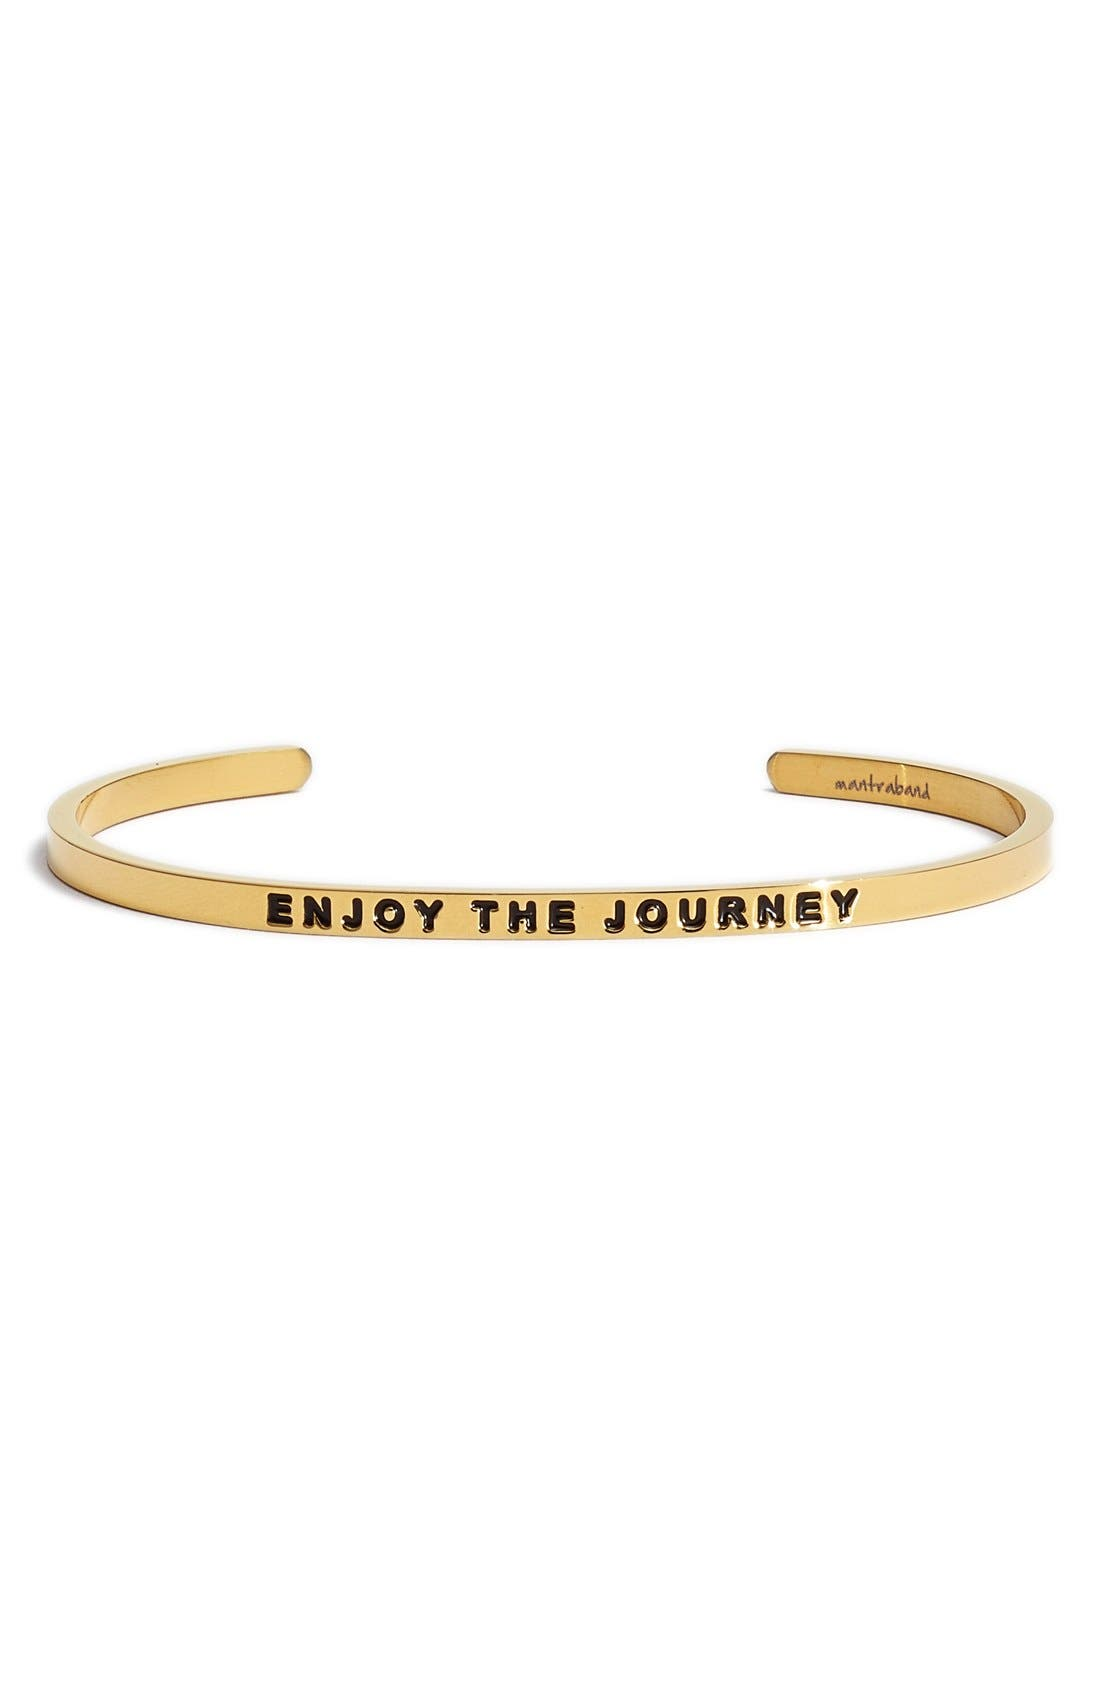 'Enjoy the Journey' Cuff,                         Main,                         color, Gold